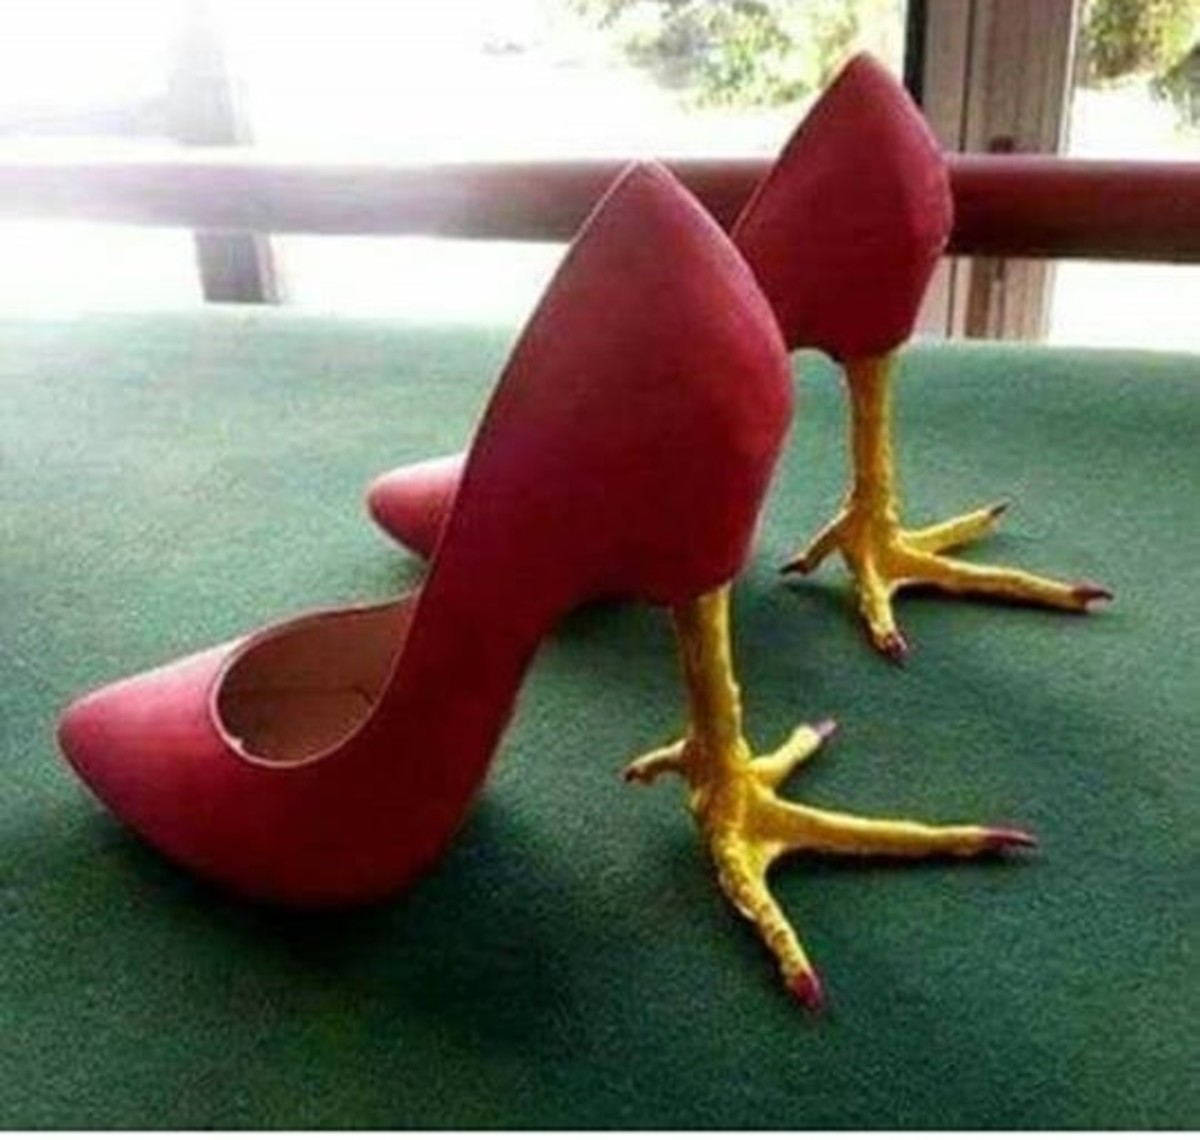 Finally! A set of sexy shoes Baba Yaga can approve of...